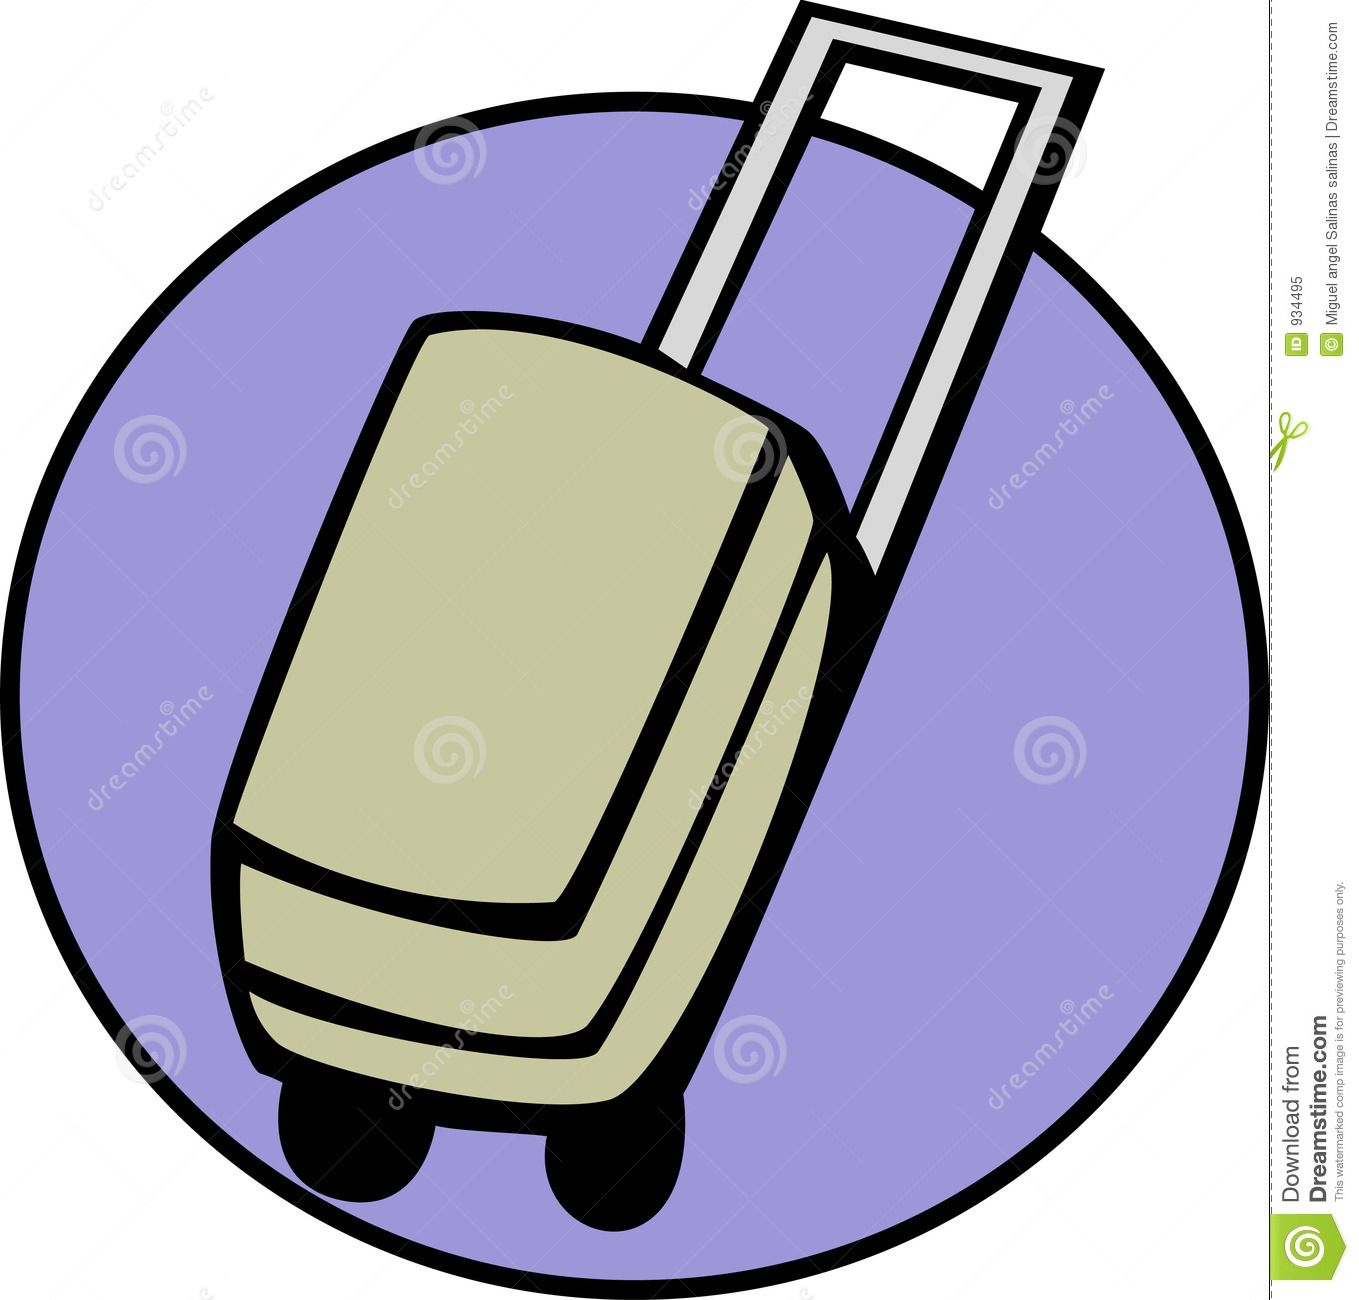 Luggage, Suitcase Or Briefcase. Vector Available Royalty Free.